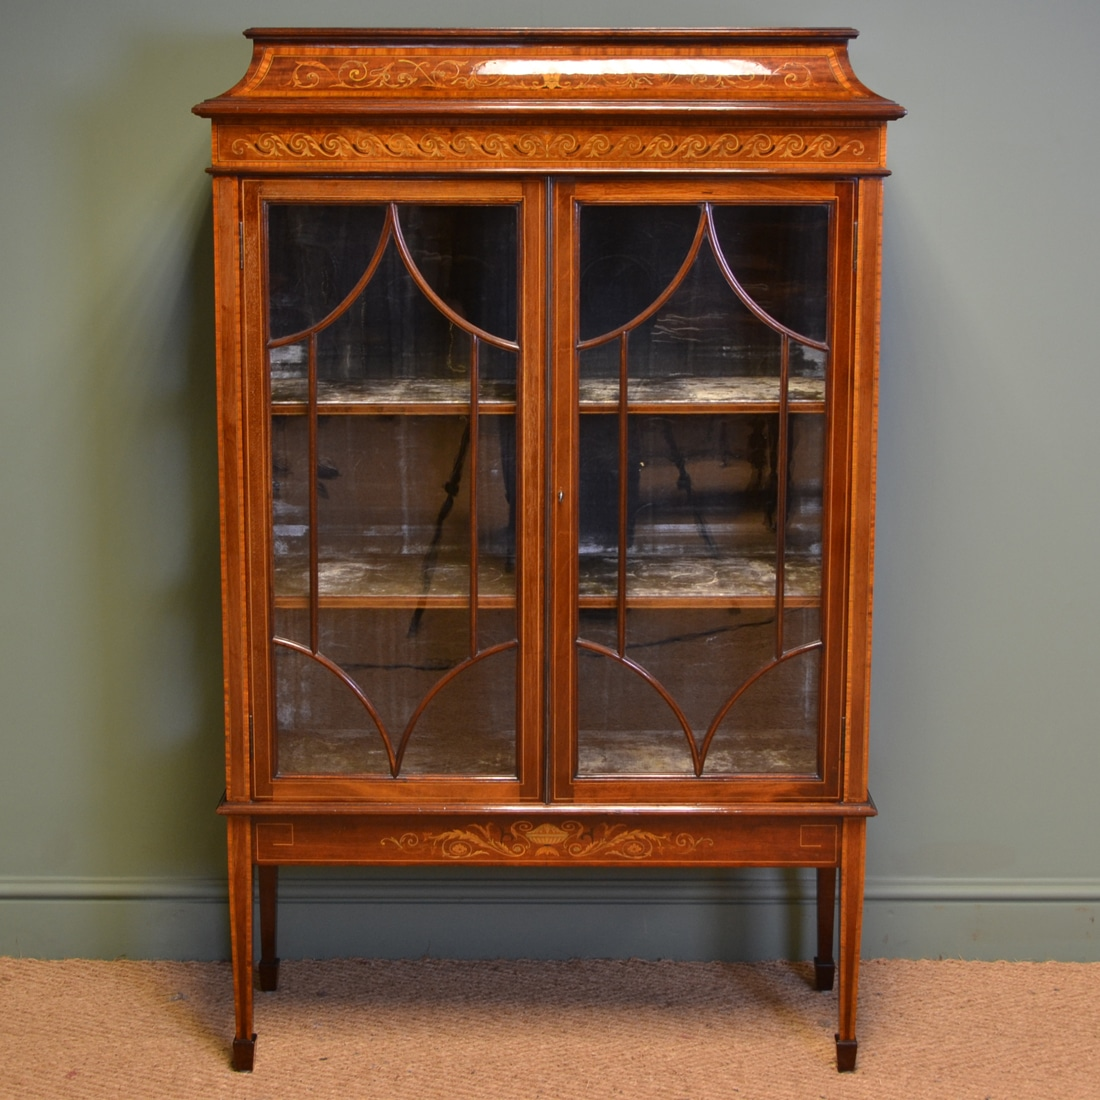 Gentil Spectacular Exhibition Quality Maple U0026 Co Inlaid Mahogany Antique Display  Cabinet